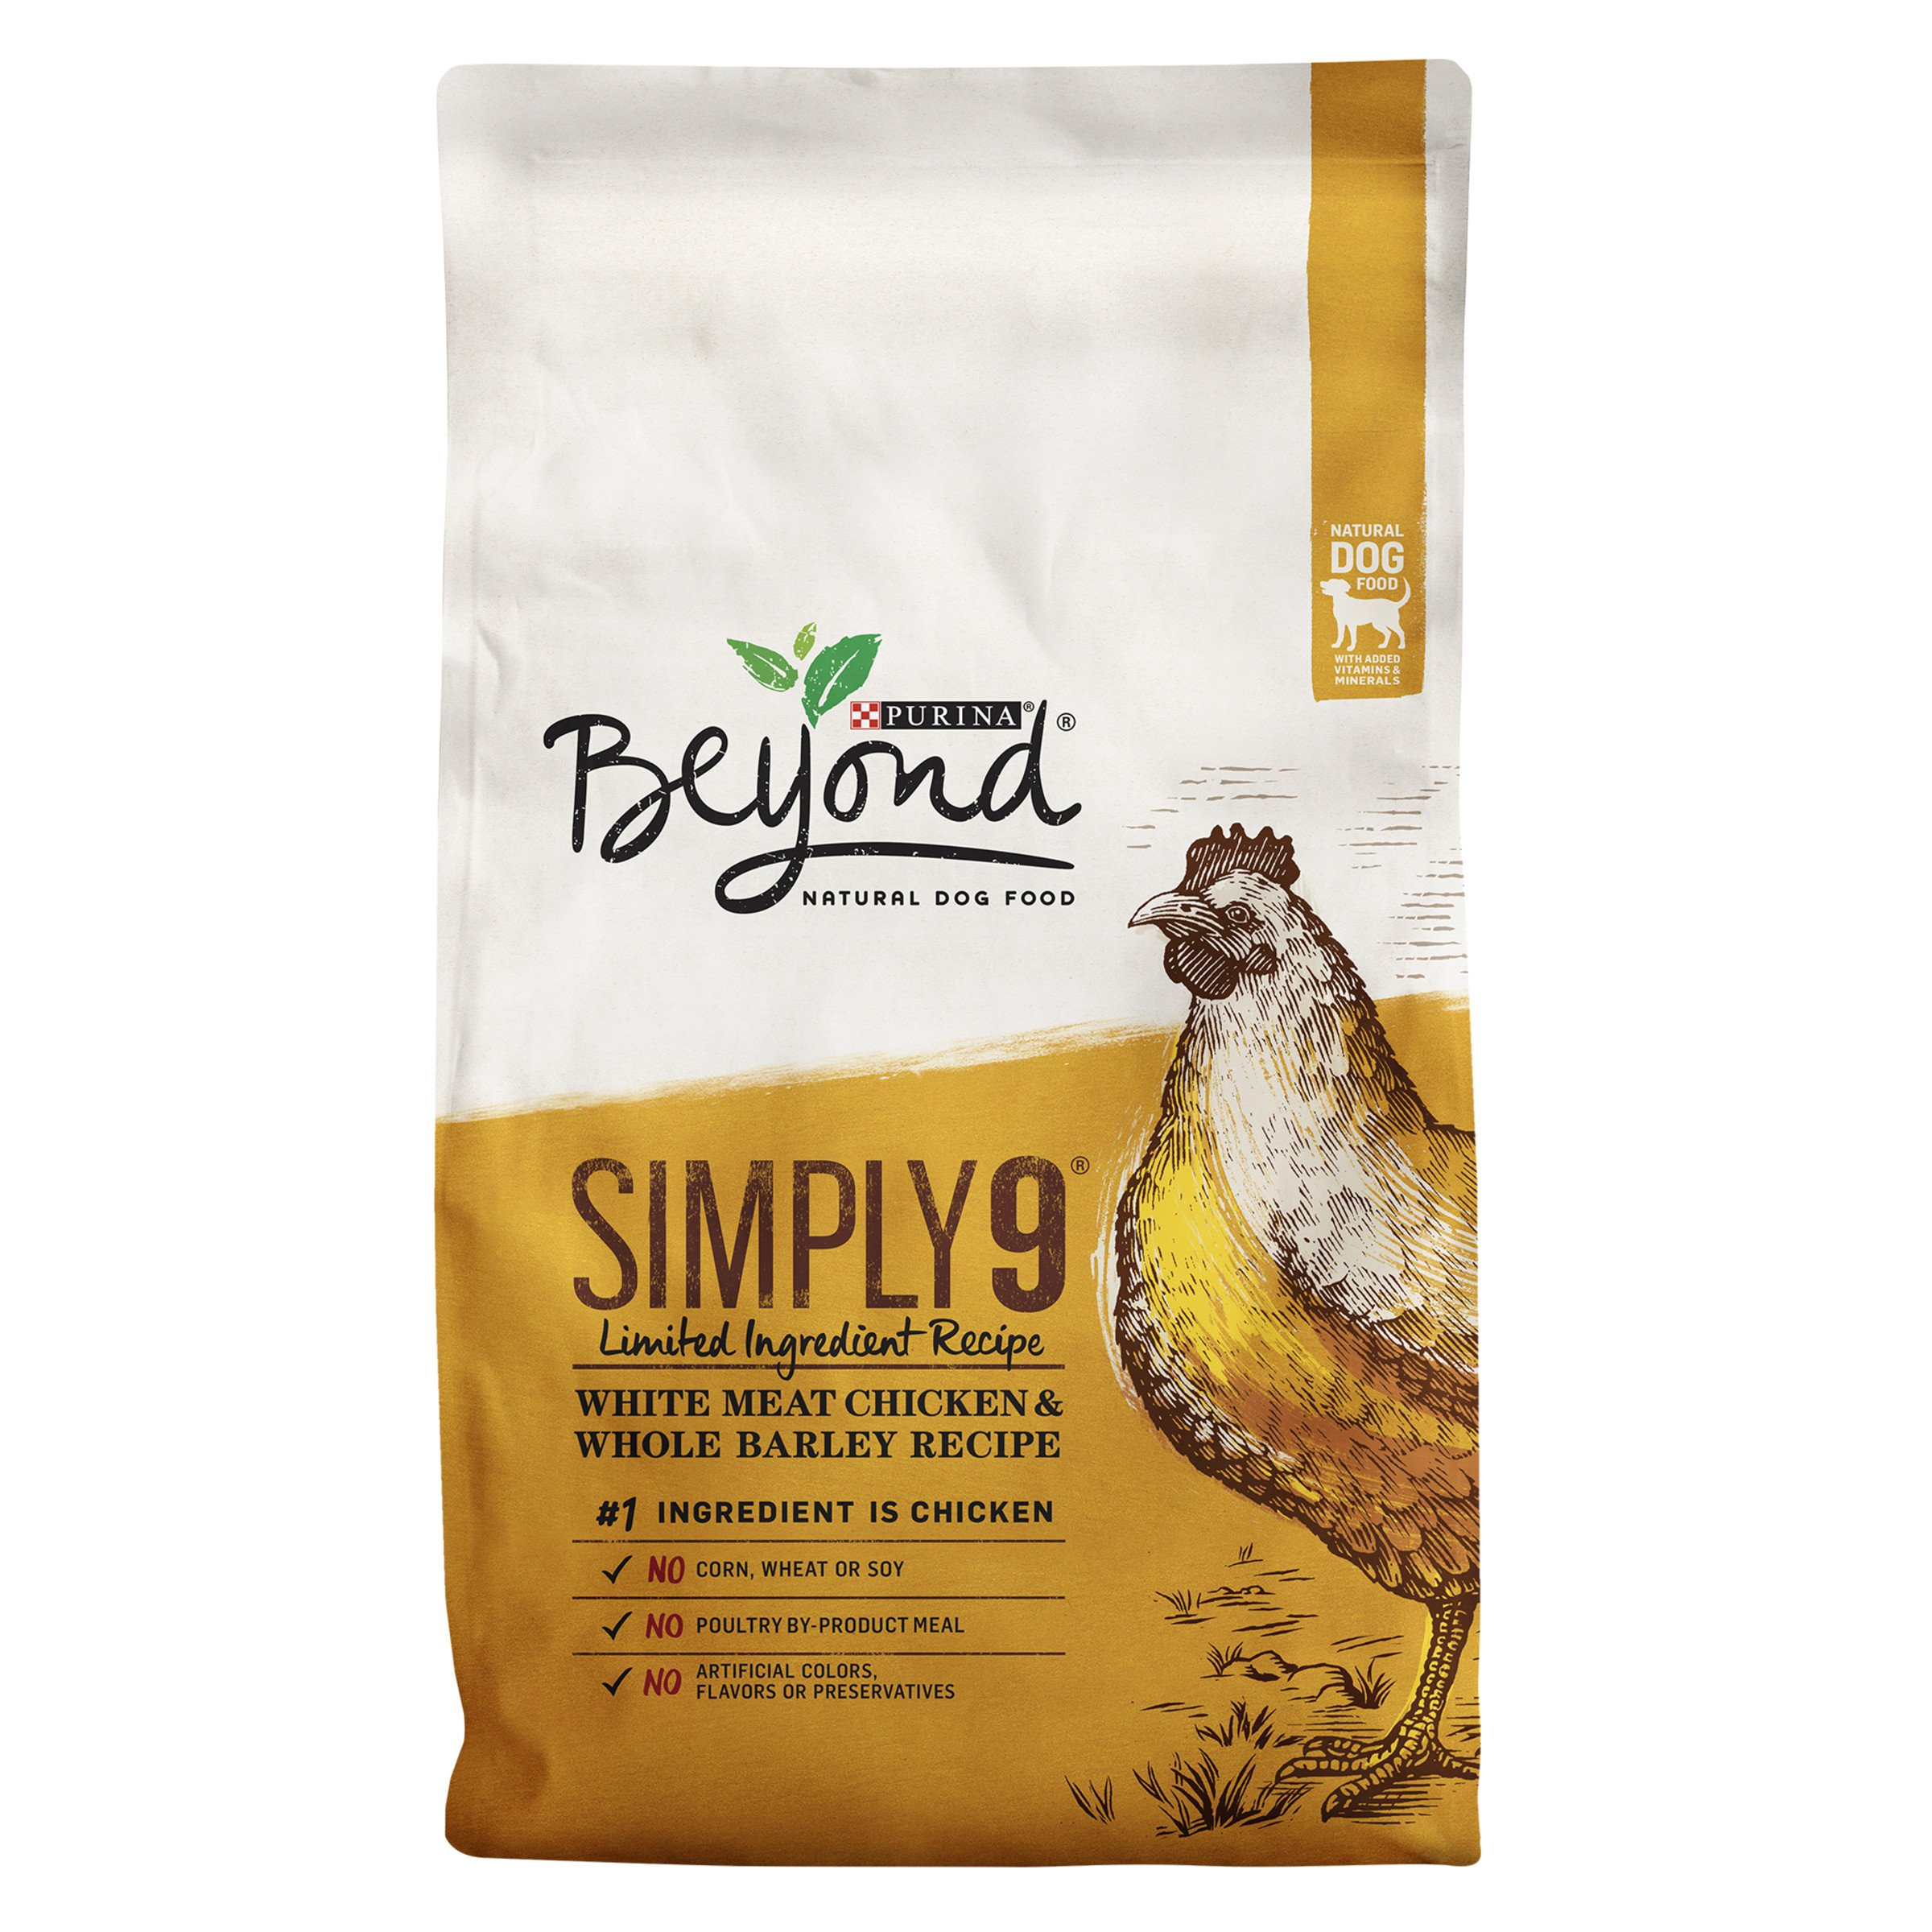 Purina Beyond Simply 9 White Meat Chicken & Whole Barley Recipe Adult Dry Dog Food - 24 lb. Bag